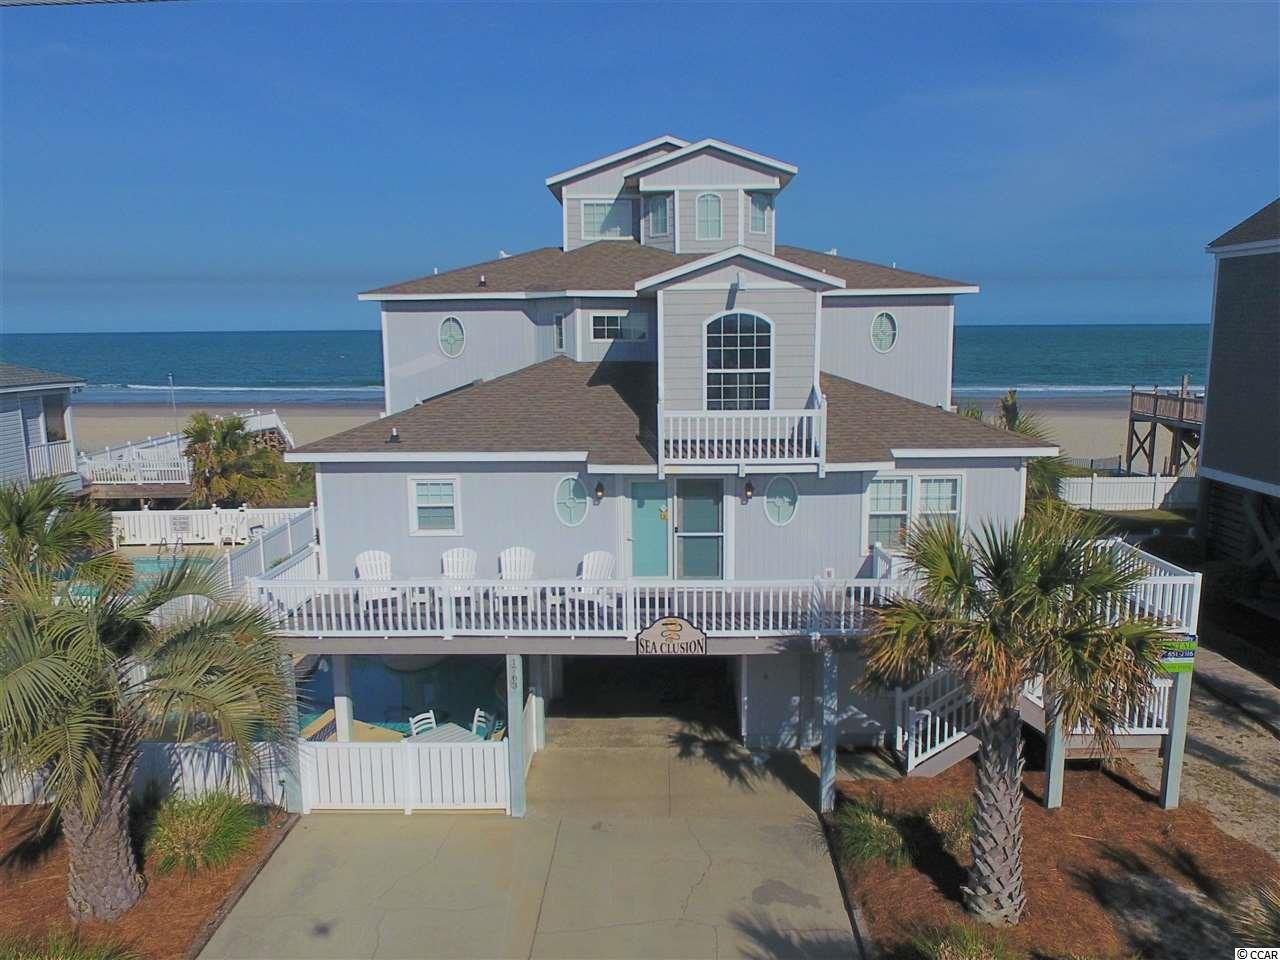 """Welcome to your new """"Sea Clusion"""" at the beach.  This 7-bedroom, 5-bath beach home sits on one of the premier large 72' wide oceanfront lots on the South-end of Garden City Beach, South Carolina.  This home underwent a major renovation in 2016 and has had a major price reduction!  During the renovations, the flooring was replaced throughout the entire house.  The kitchen and bathrooms were completely gutted.  The sheet rock, insulation, electrical, plumbing and interior doors were replaced on the first two floors (top two floors were added in 1995 to maximize the full 40' county height restriction).  All furniture was replaced and picked out my a professional interior decorator.  A private heated pool helps generate great rental income and makes this house an excellent investment property.  This beach home is in immaculate shape and ready for a new owner.  Contact the listing agent, or your Realtor, to set up a private showing.  To see the 3-D Virtual Tour, click the following link: https://my.matterport.com/show/?m=jGLDj9VAALC&brand=0"""